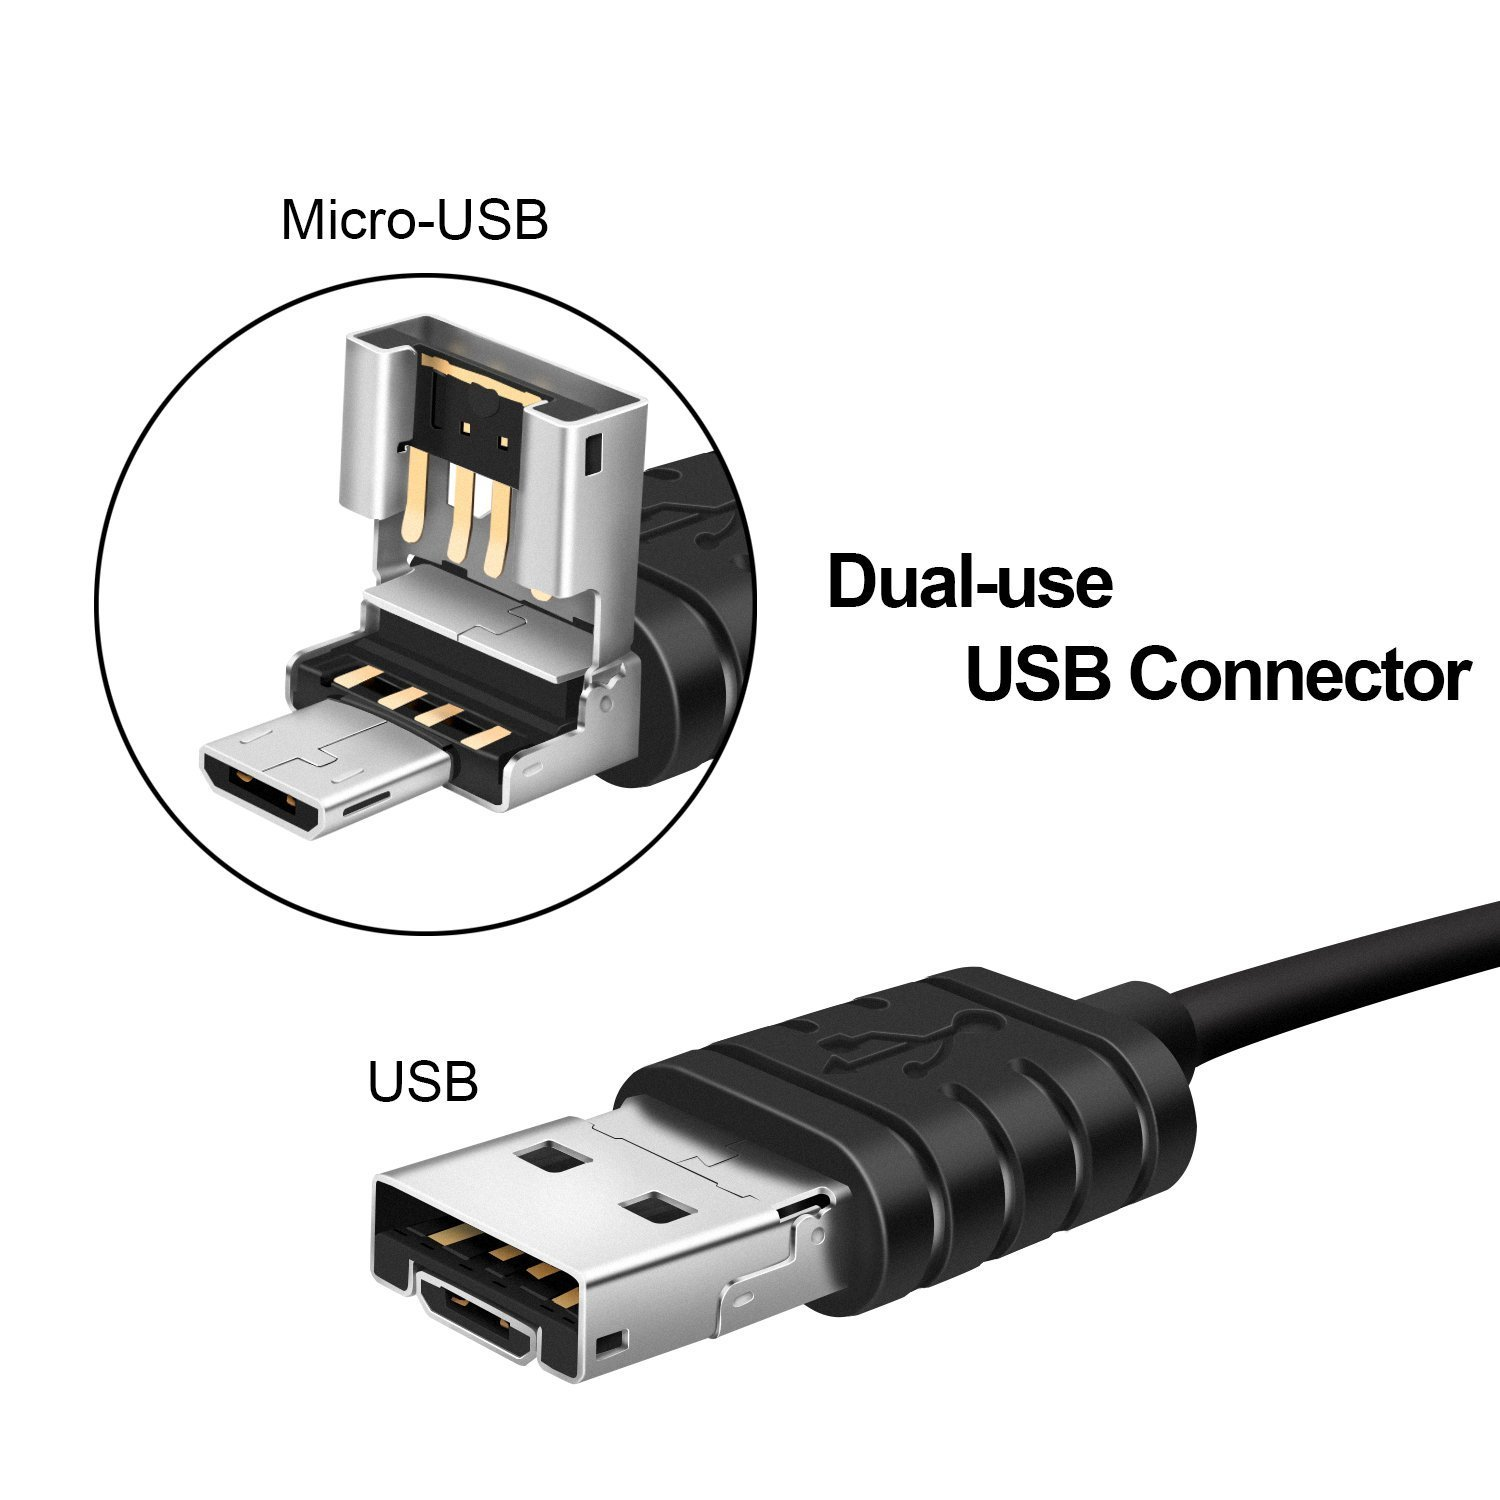 Accessories & Parts Impartial Universal Wristband Micro Usb Cable Charger Charging Data Sync For Android Cell Phone Micro Usb Cable Cord Power Convenience Goods